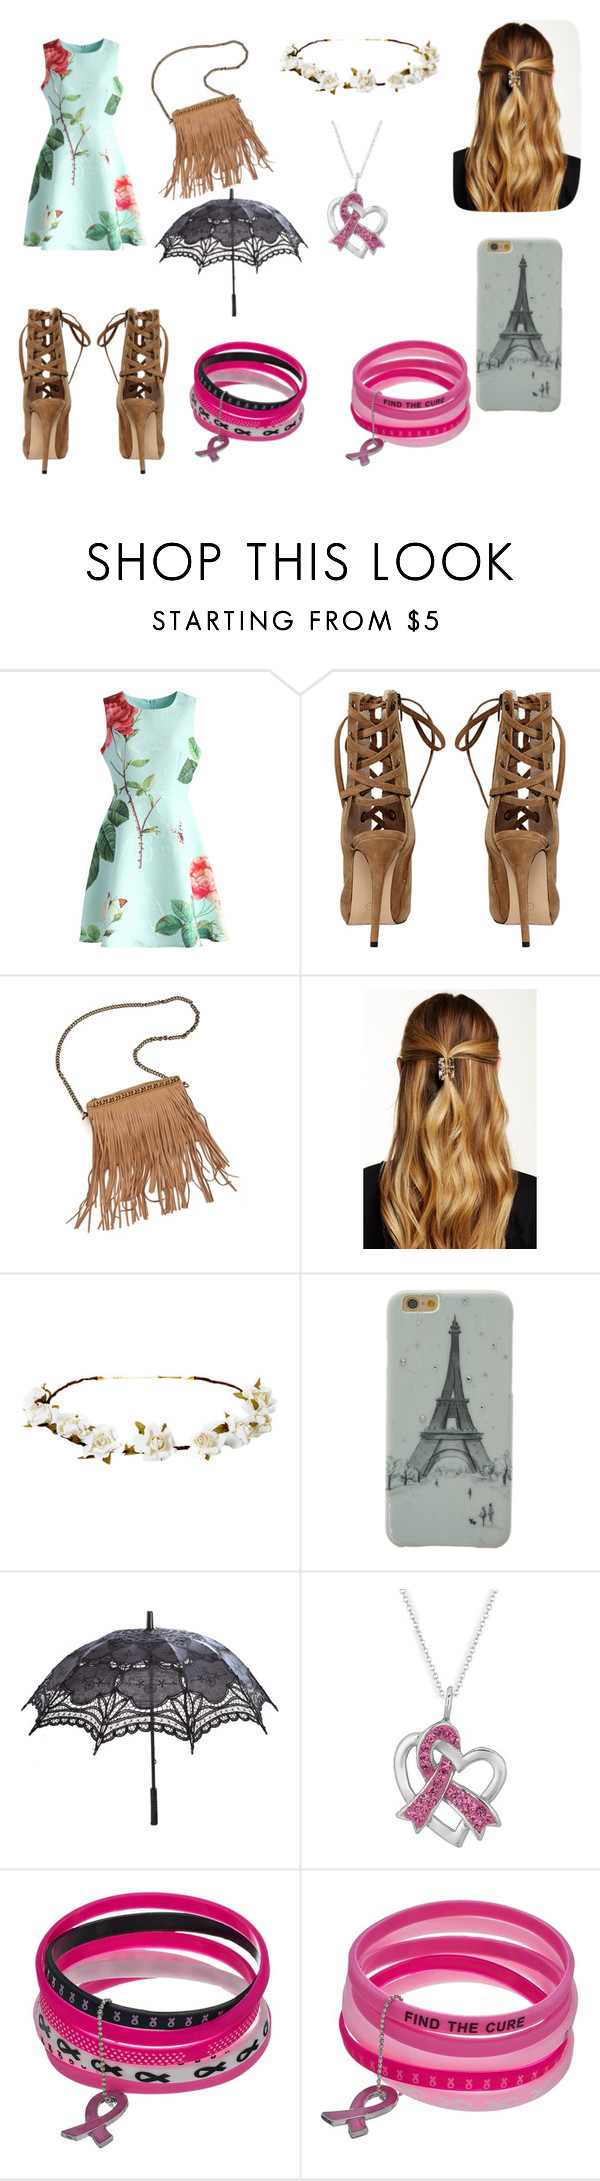 """Spring Day"" by horans-girlfriend ❤ liked on Polyvore featuring Chicwish, Patchington, Natasha Accessories and Cult Gaia"